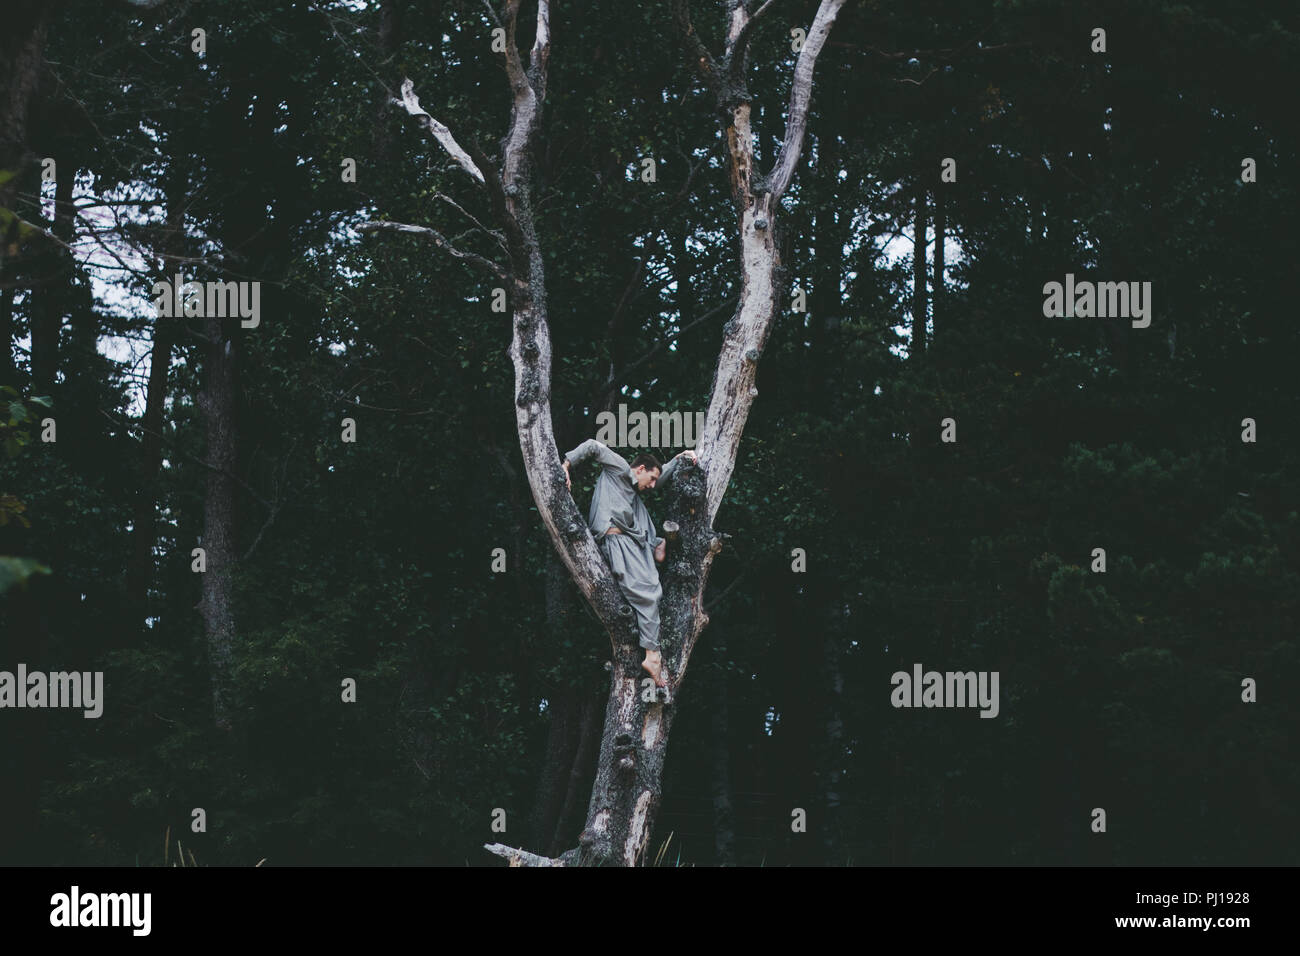 Man moving in nature forest - Stock Image